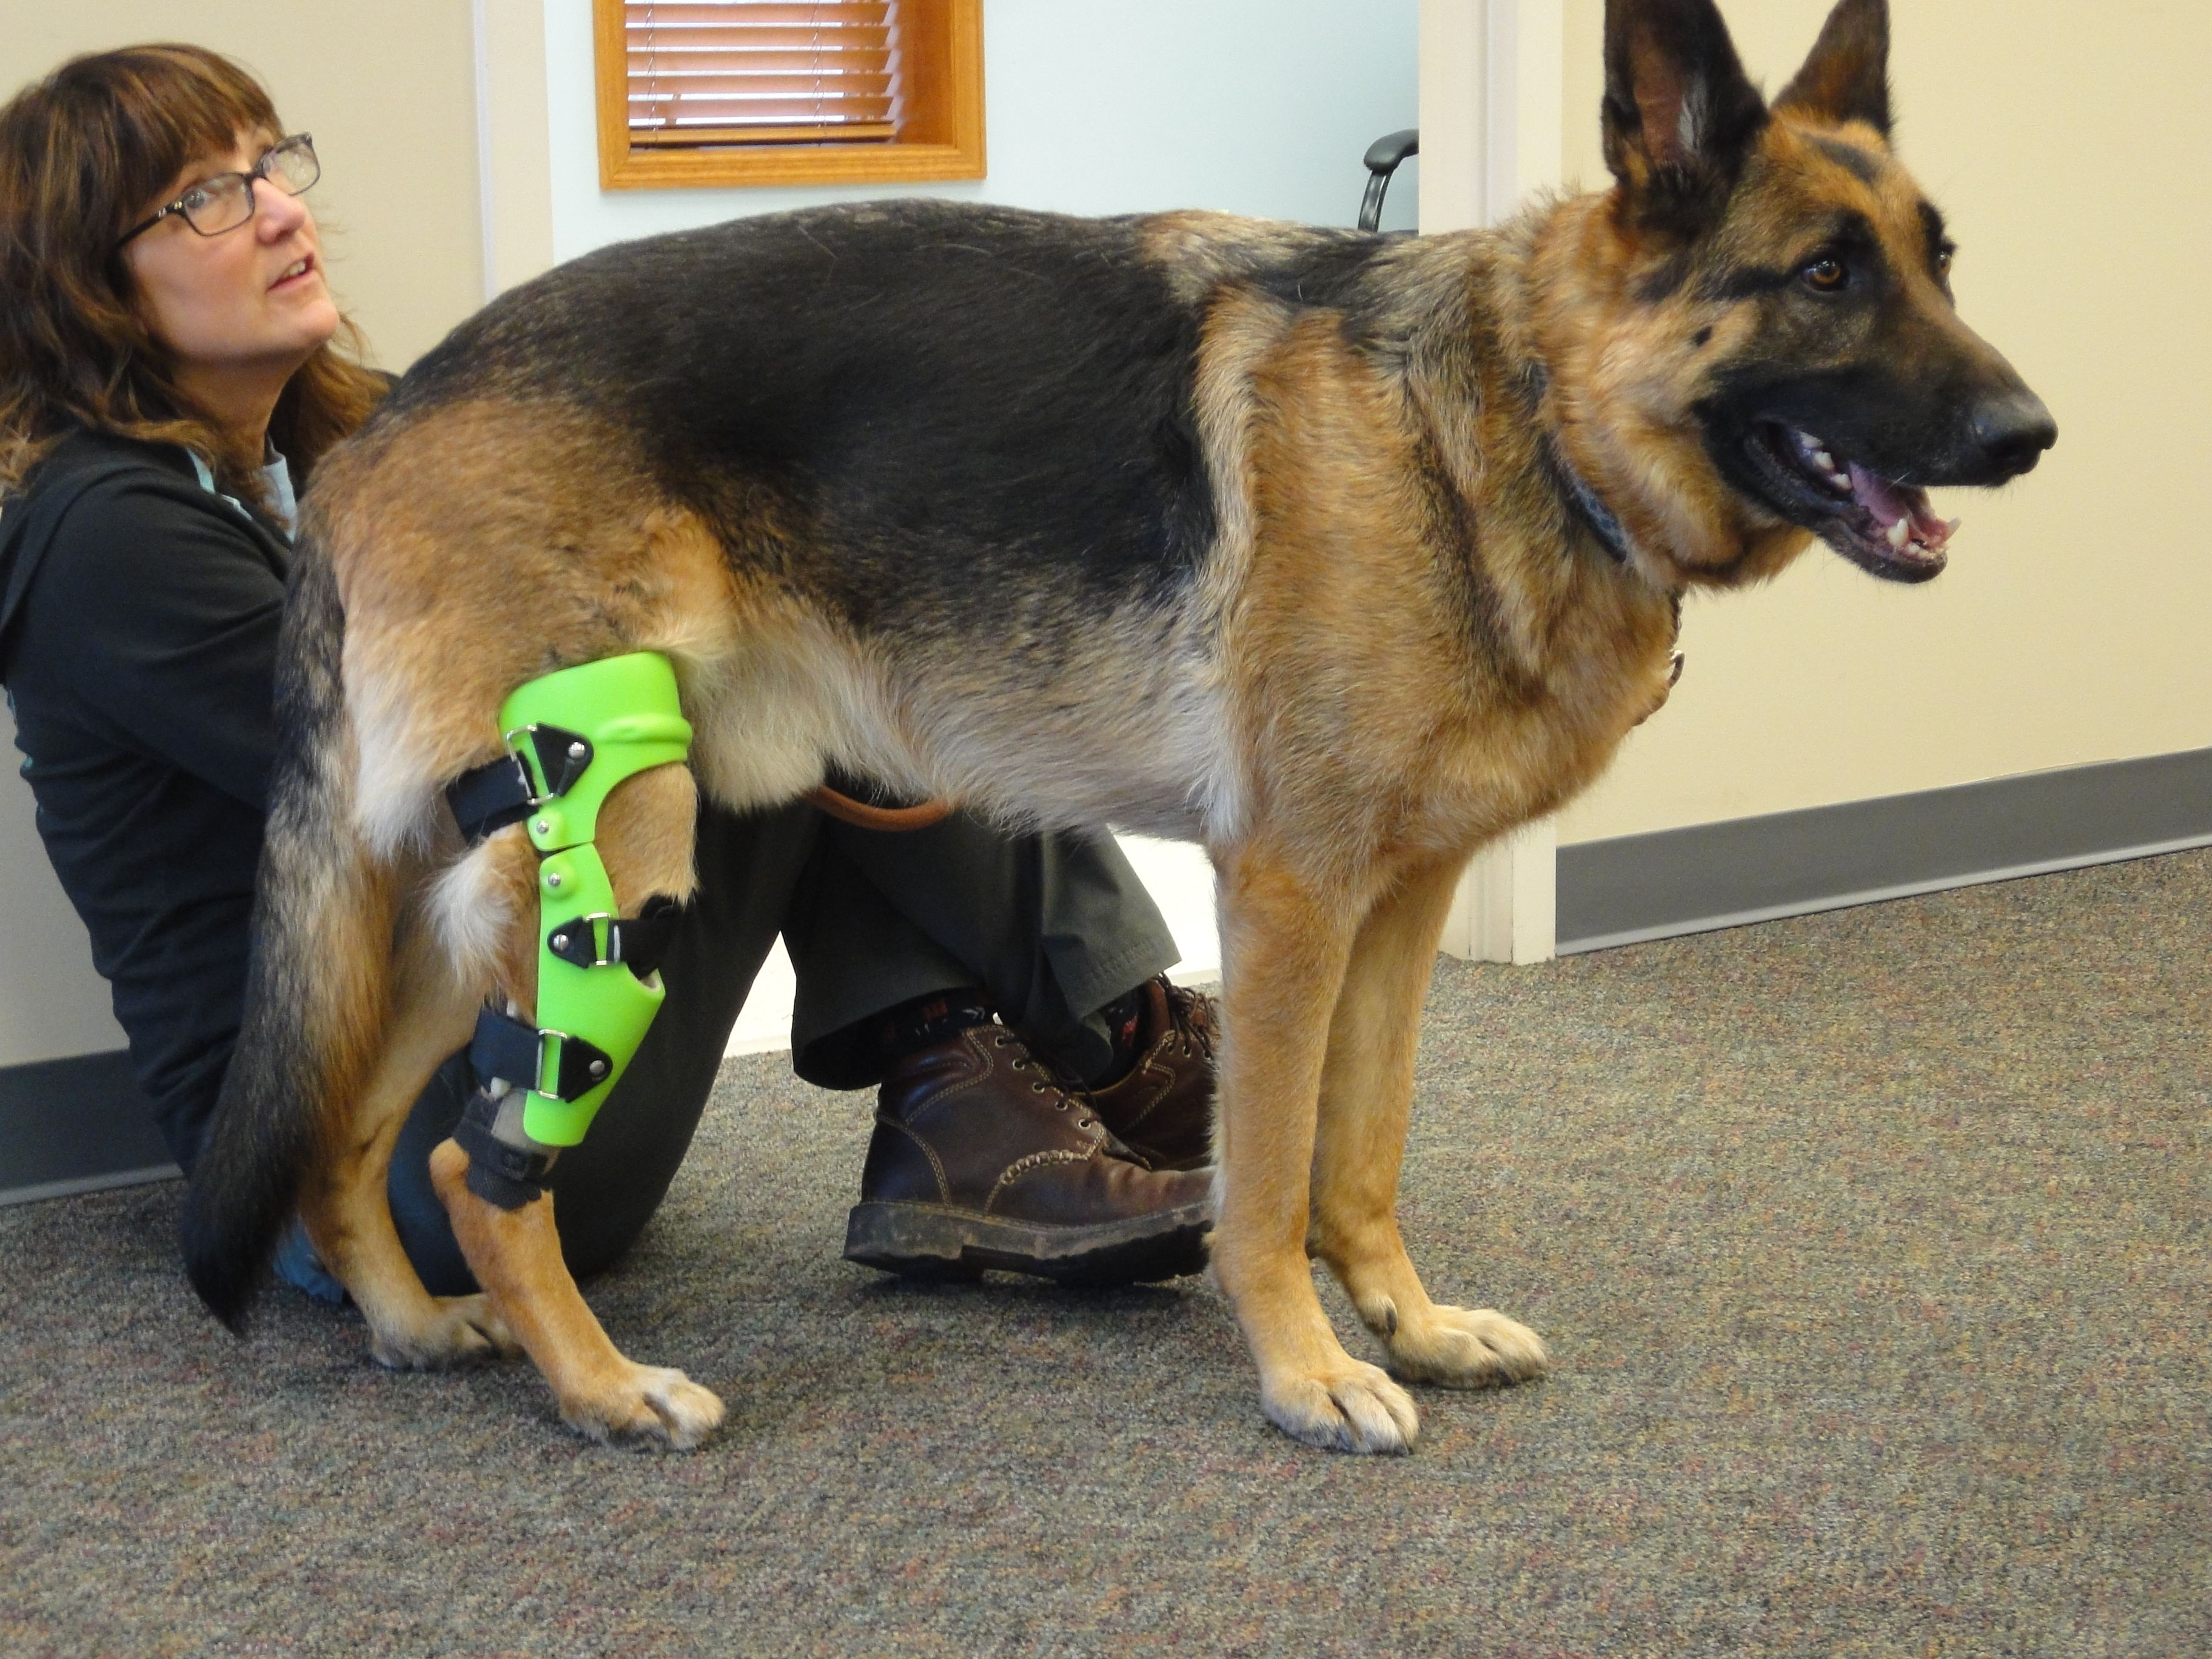 Acl Brace Instead Of Surgery Dog Braces Dogs Teddy Bear Puppies